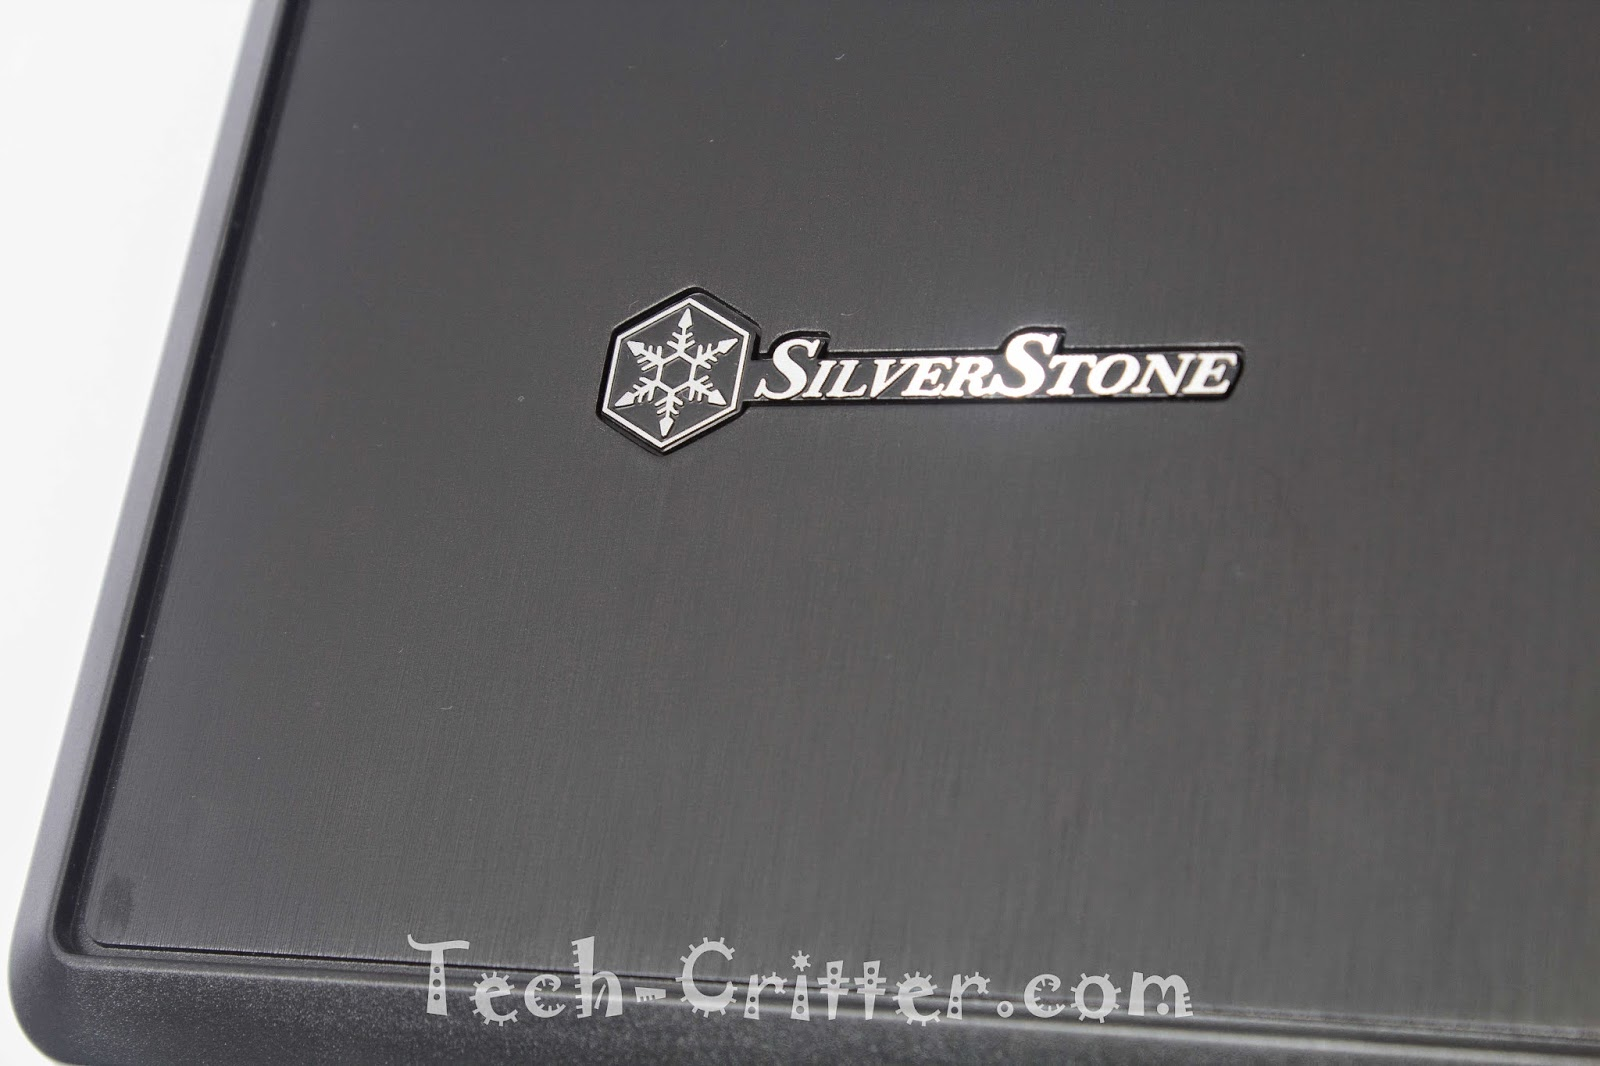 Unboxing & Review: Silverstone PS09 (SST-PS09B) 70